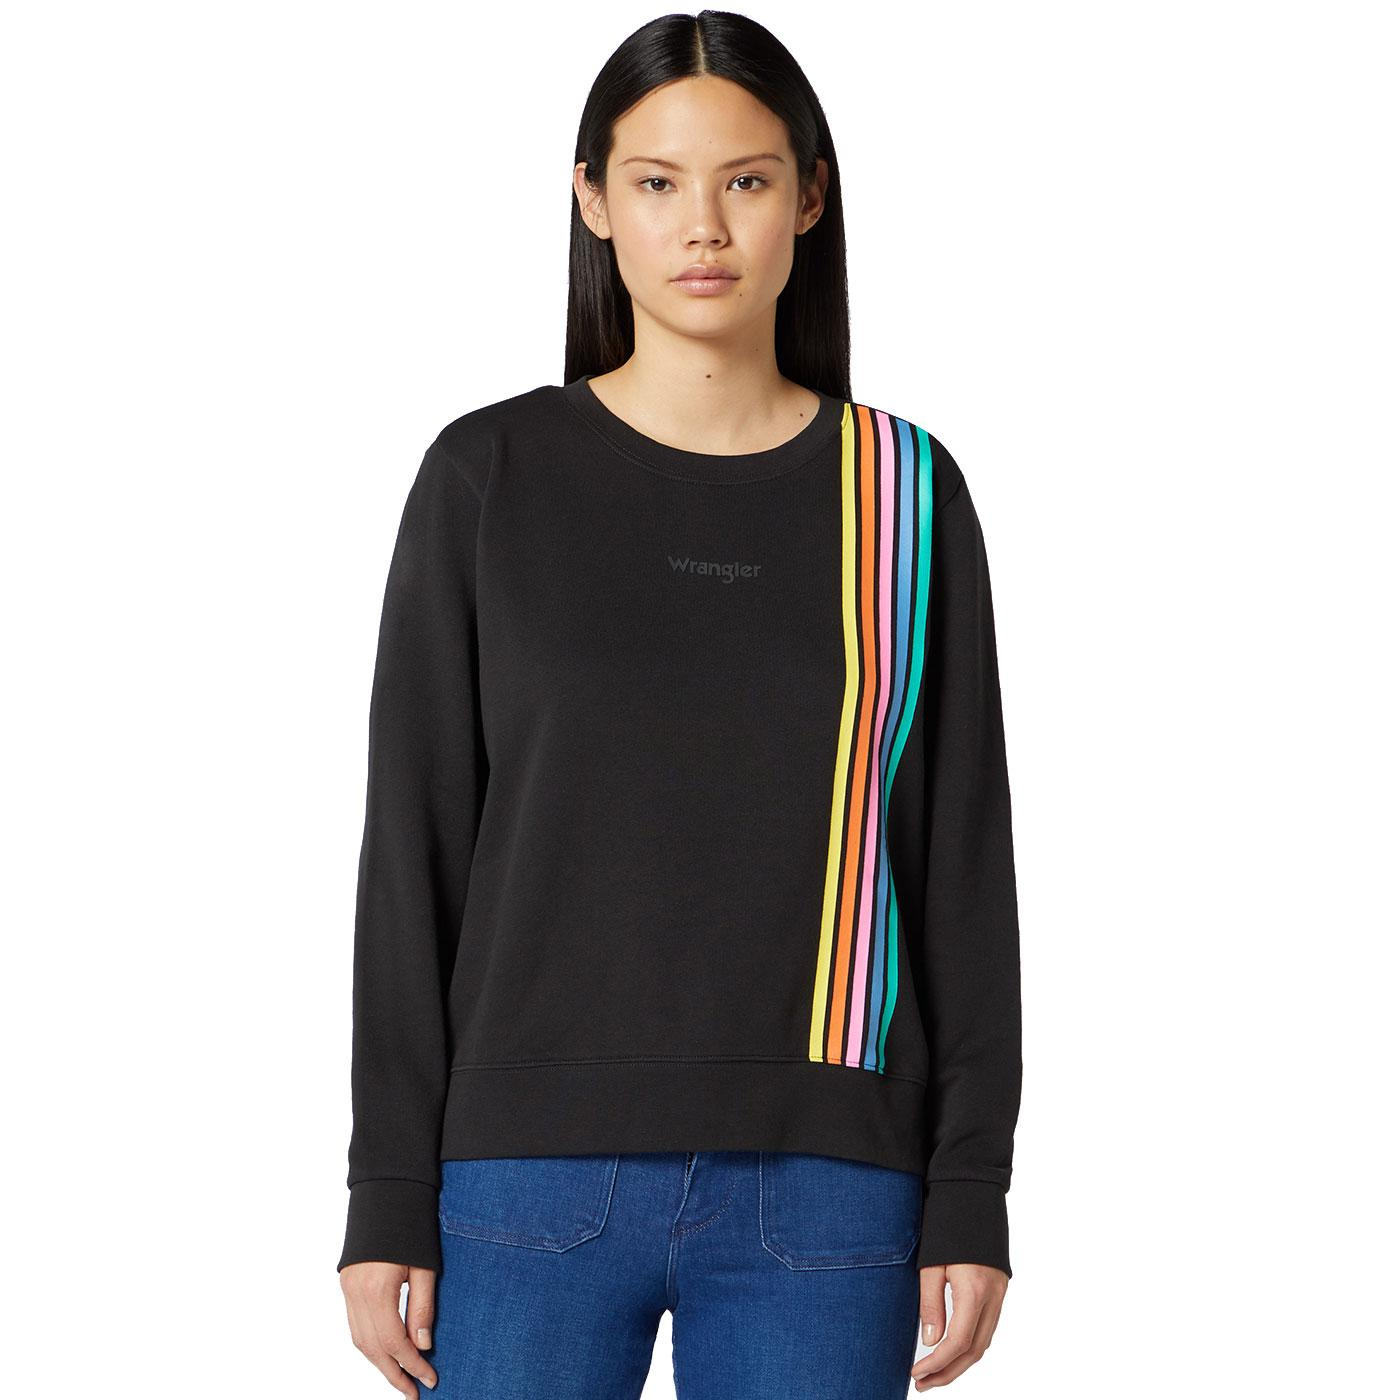 WRANGLER Women's Retro Rainbow Stripe Sweatshirt